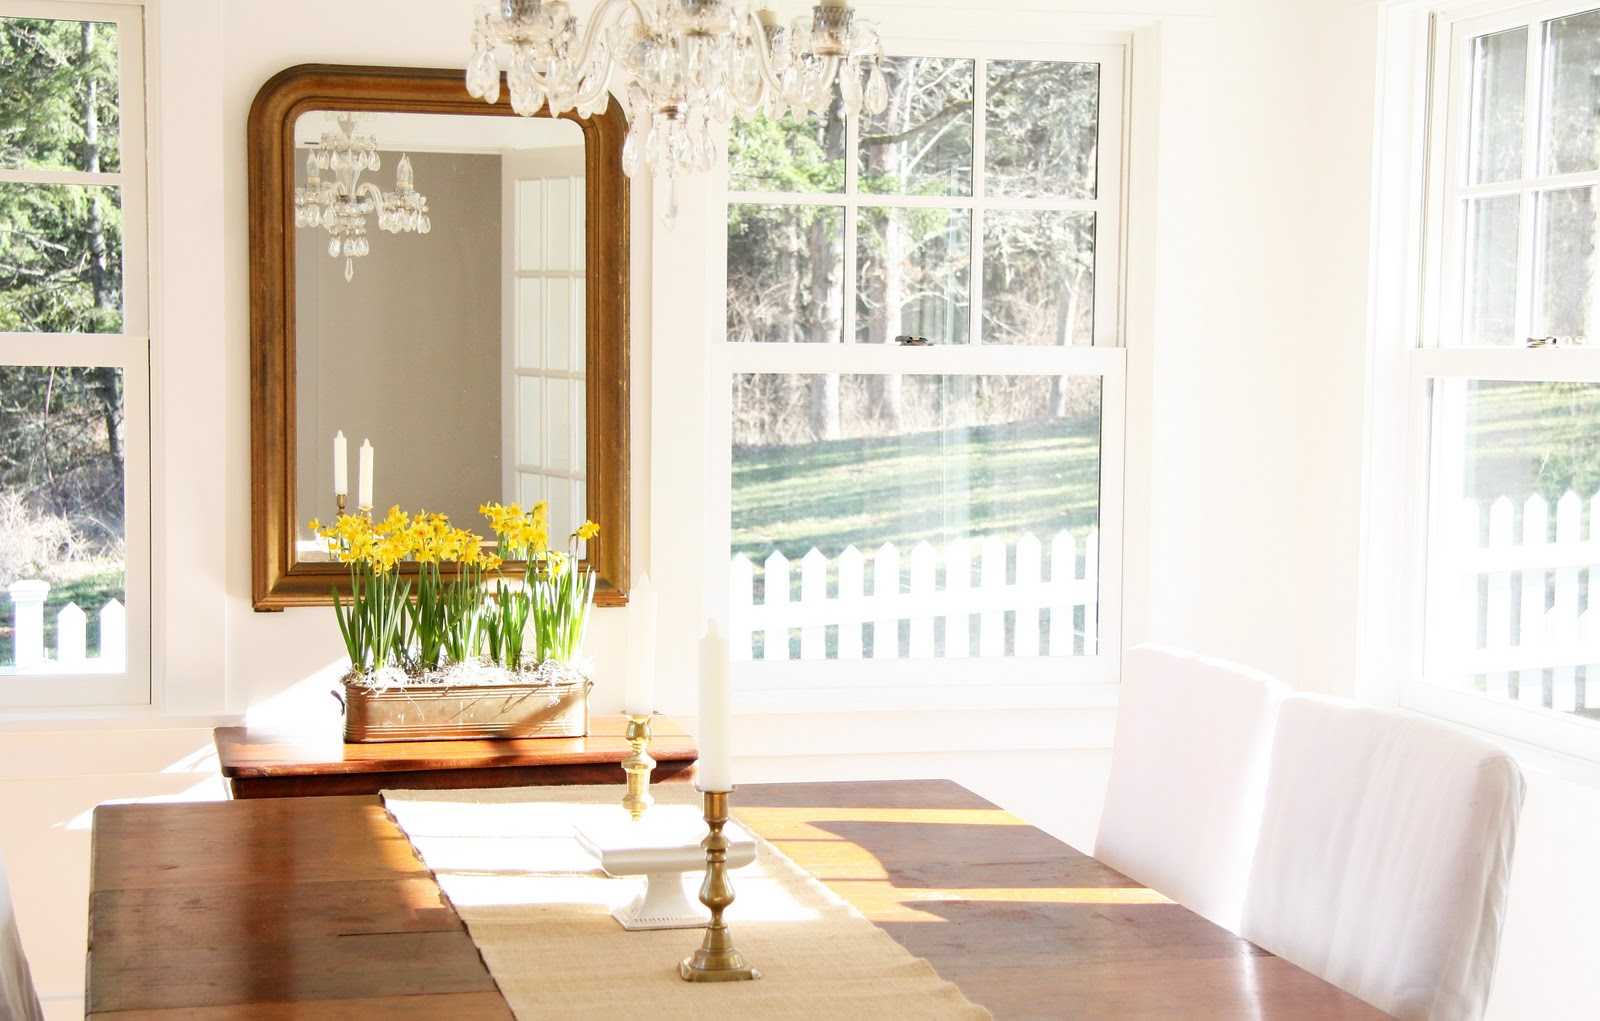 In the fields dining with daffodils for Dining room or there is nothing actress